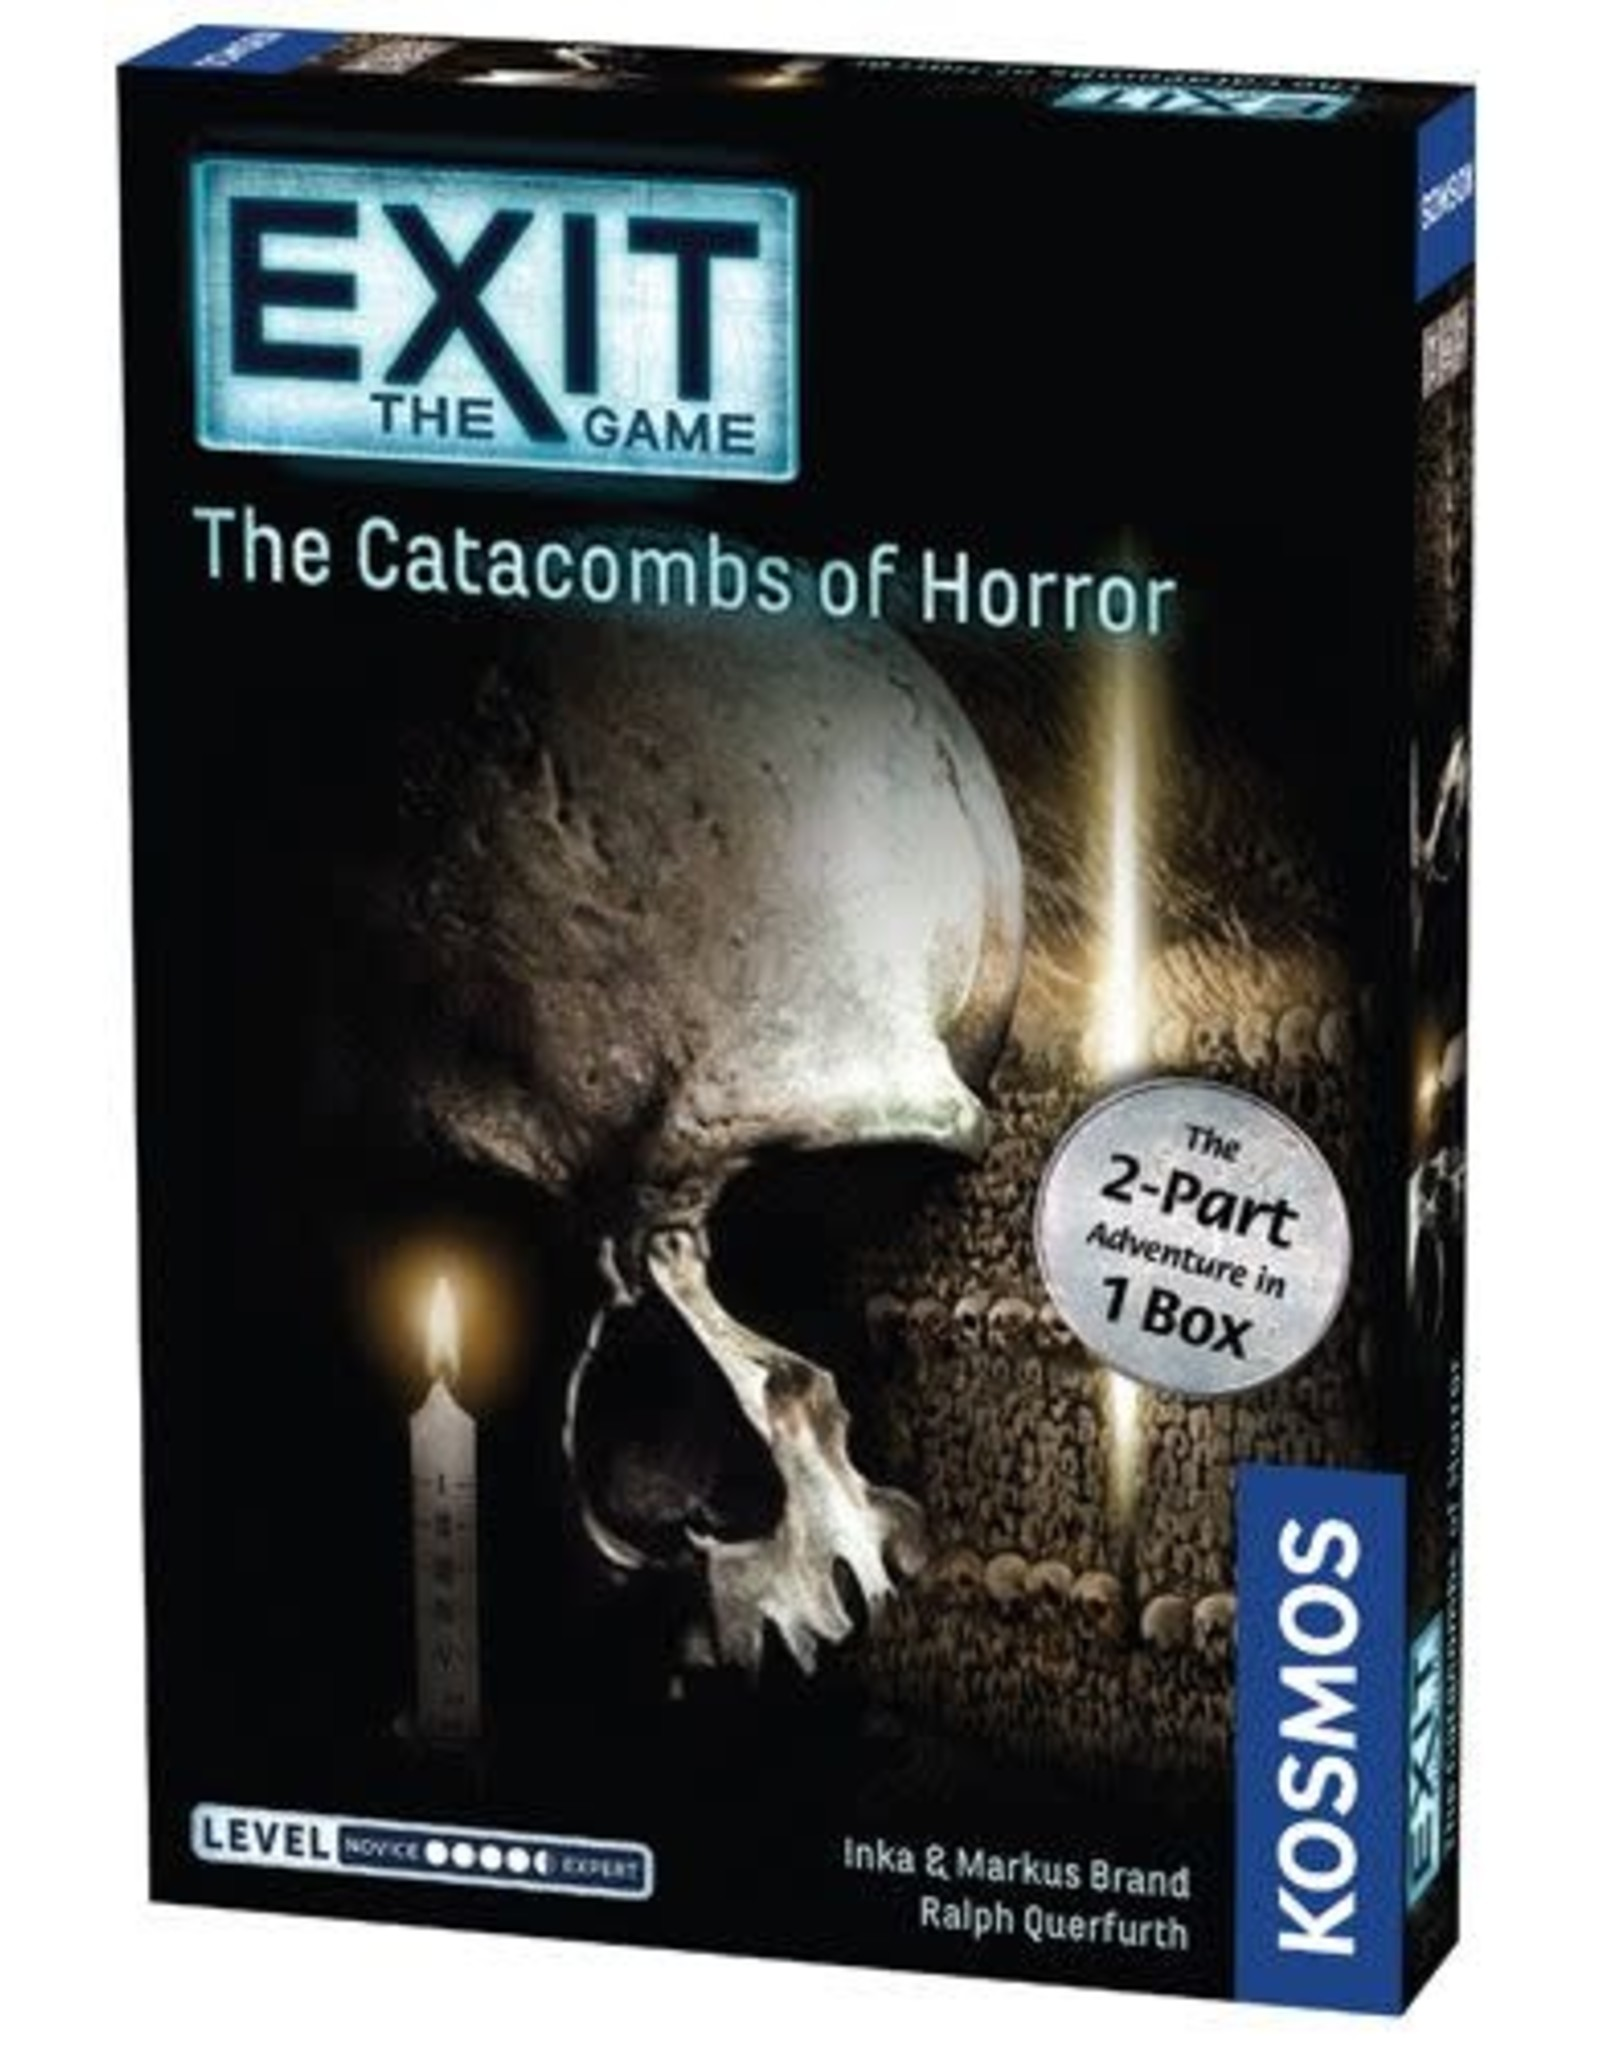 Thames and Kosmos Exit: The Catacombs of Horror